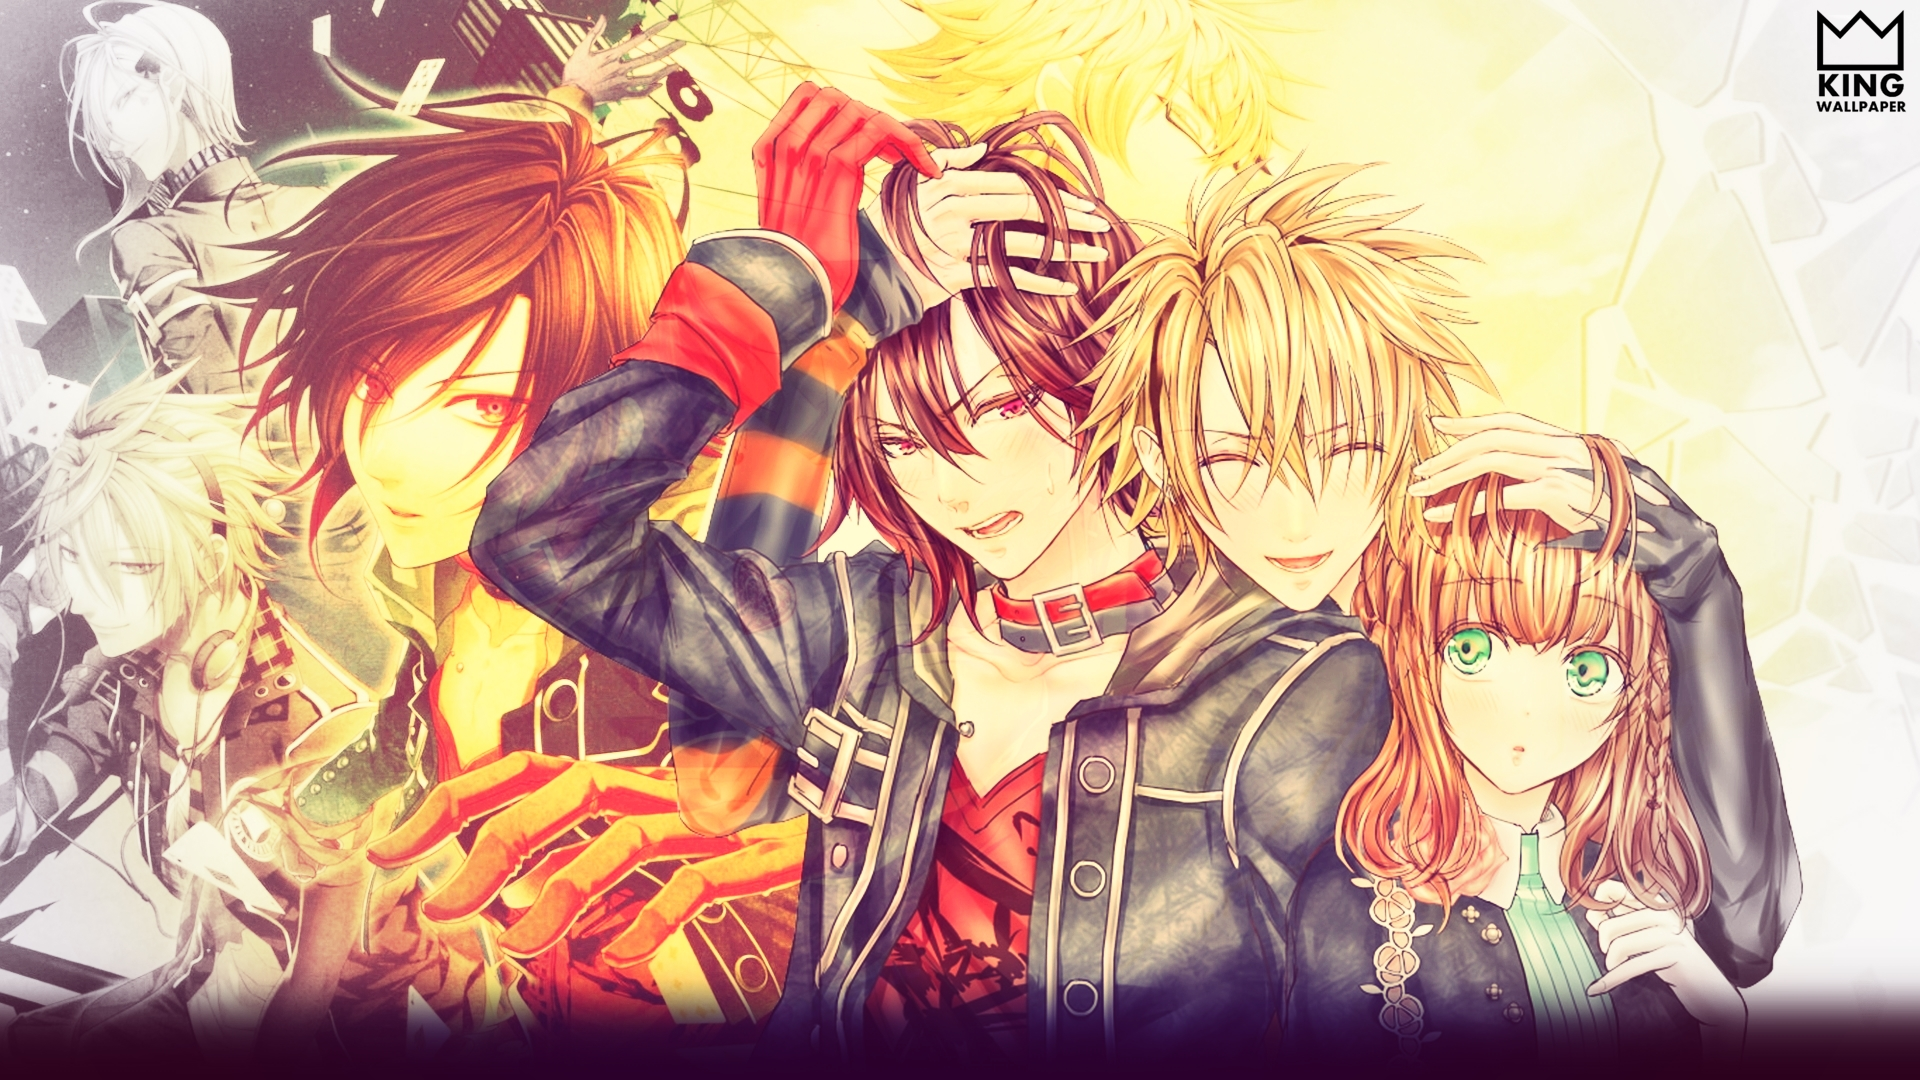 Amnesia anime wallpaper wallpapersafari - Wallpaper manga anime ...